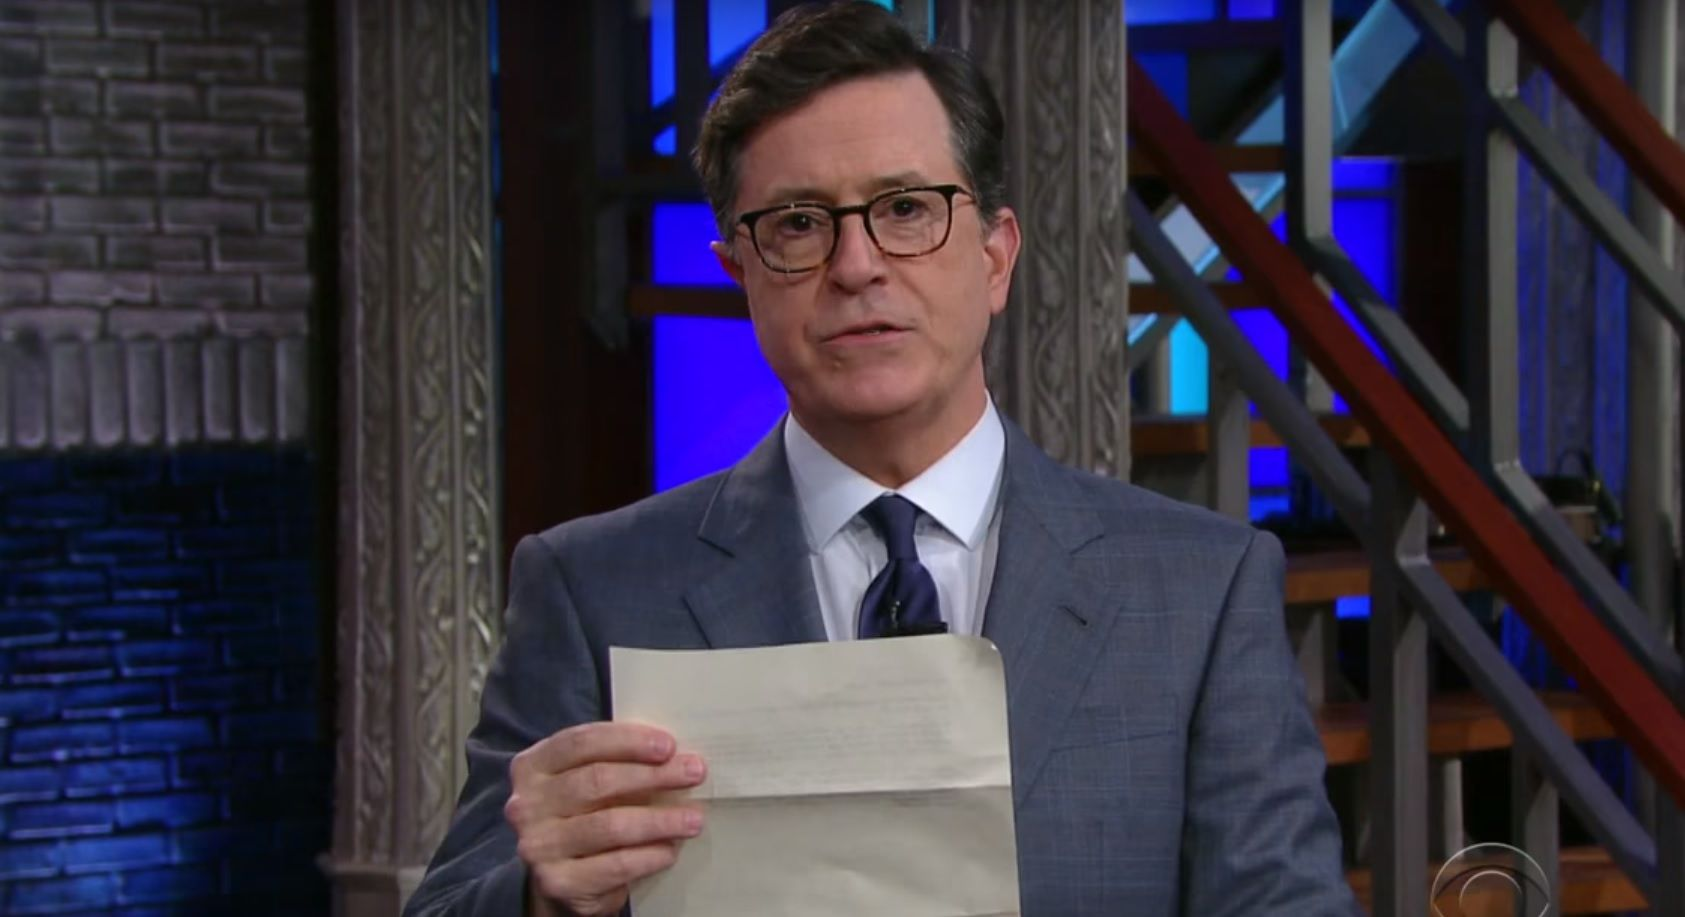 Stephen Colbert's intervention for Trump